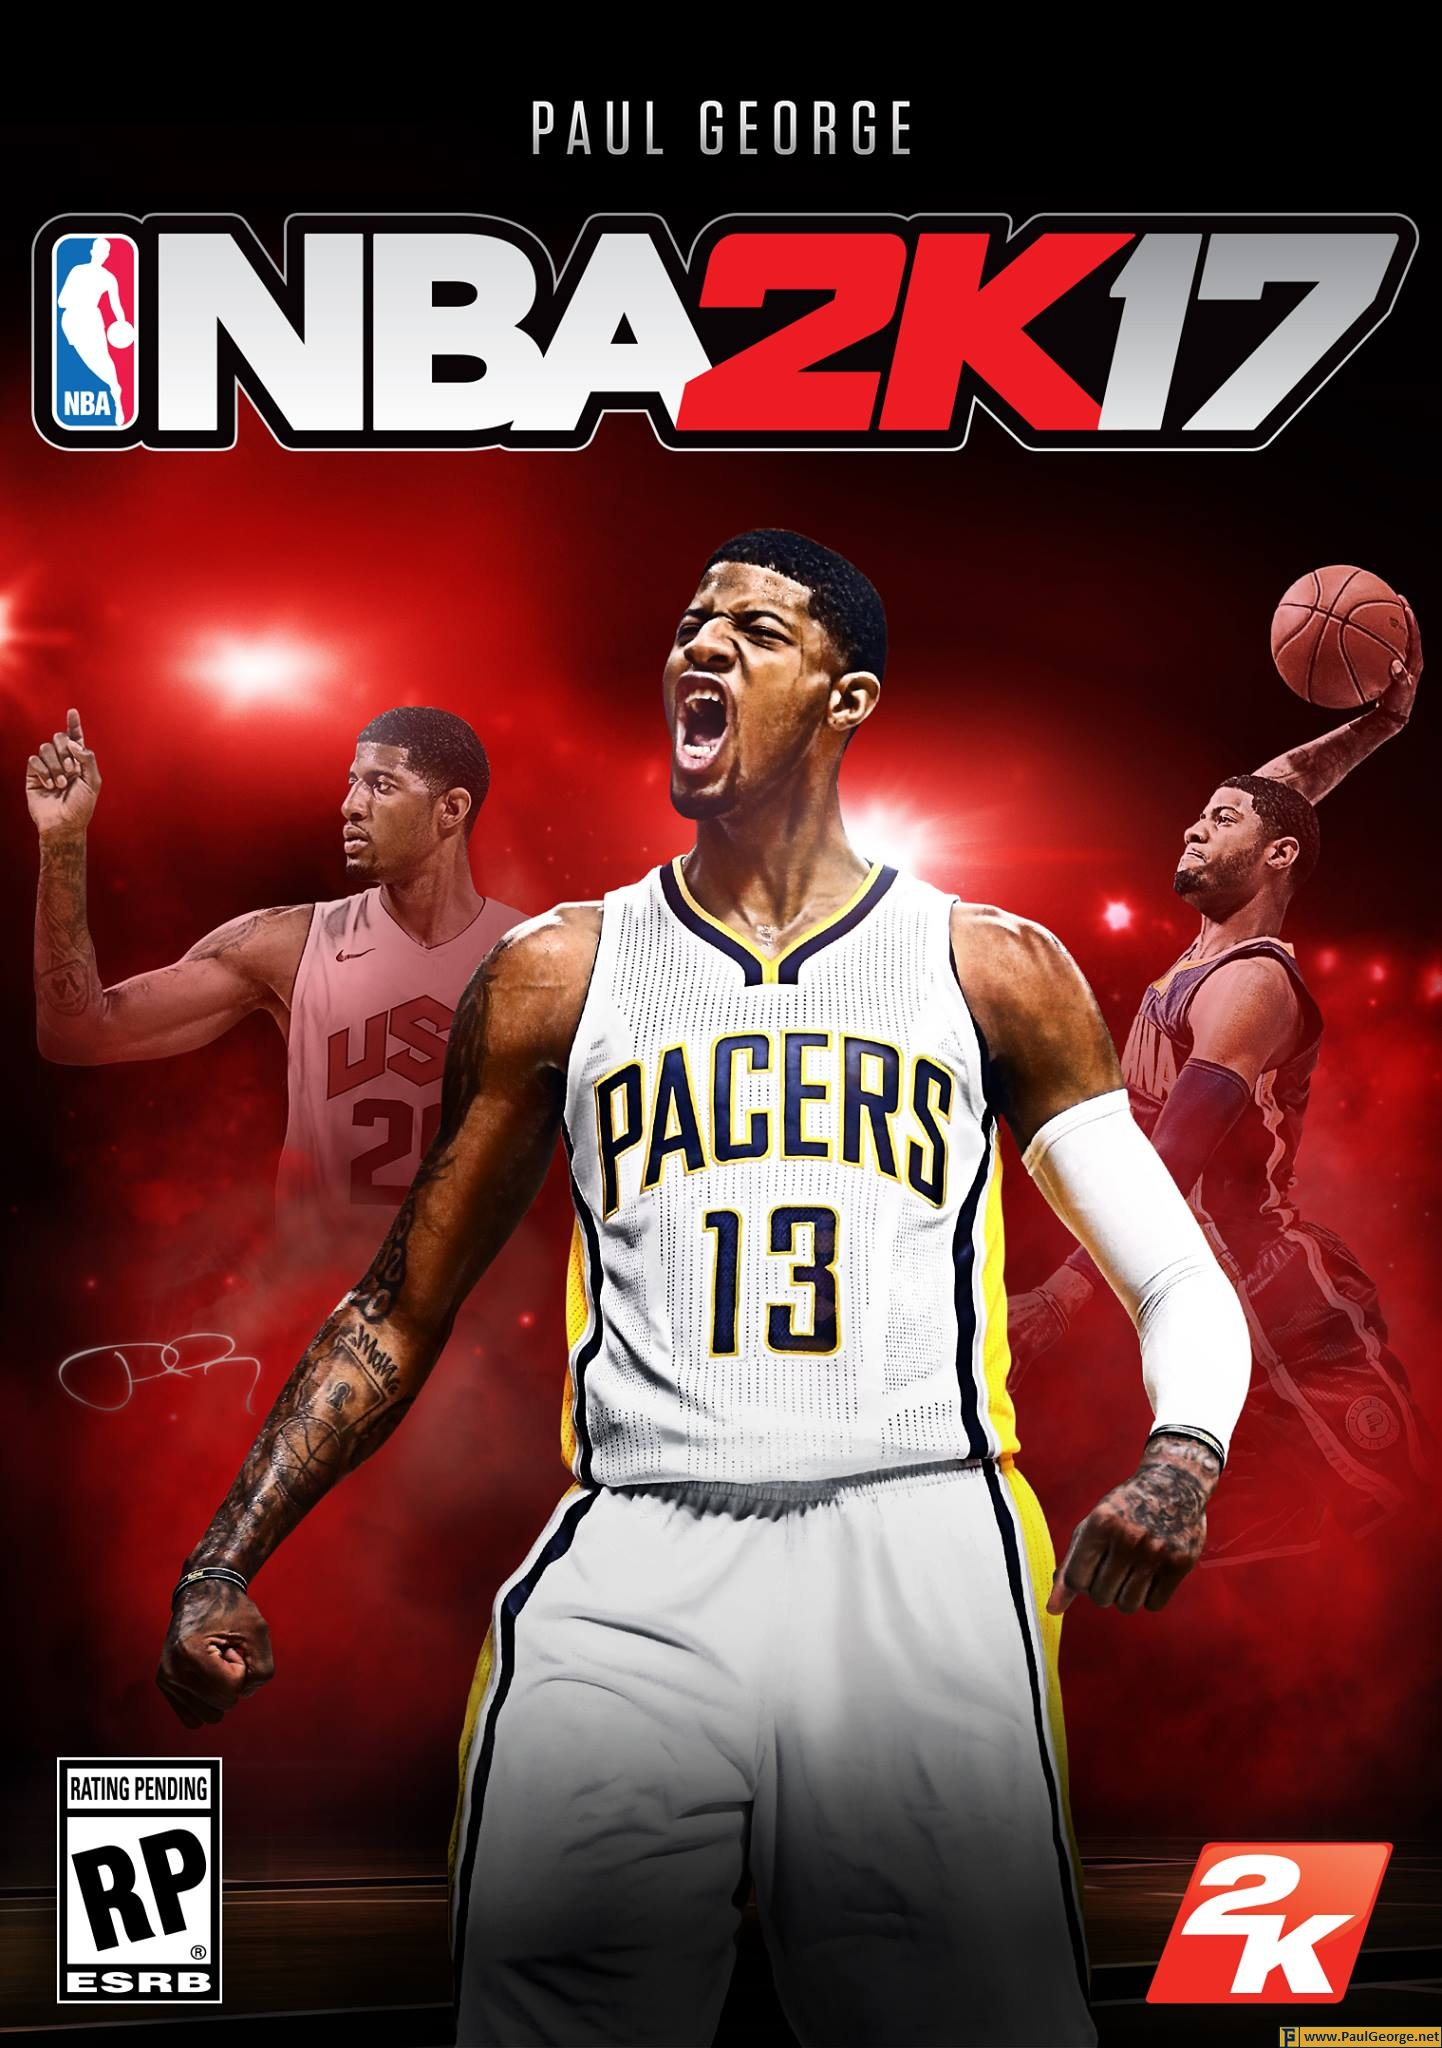 Paul George Named NBA 2K17 Cover Athlete